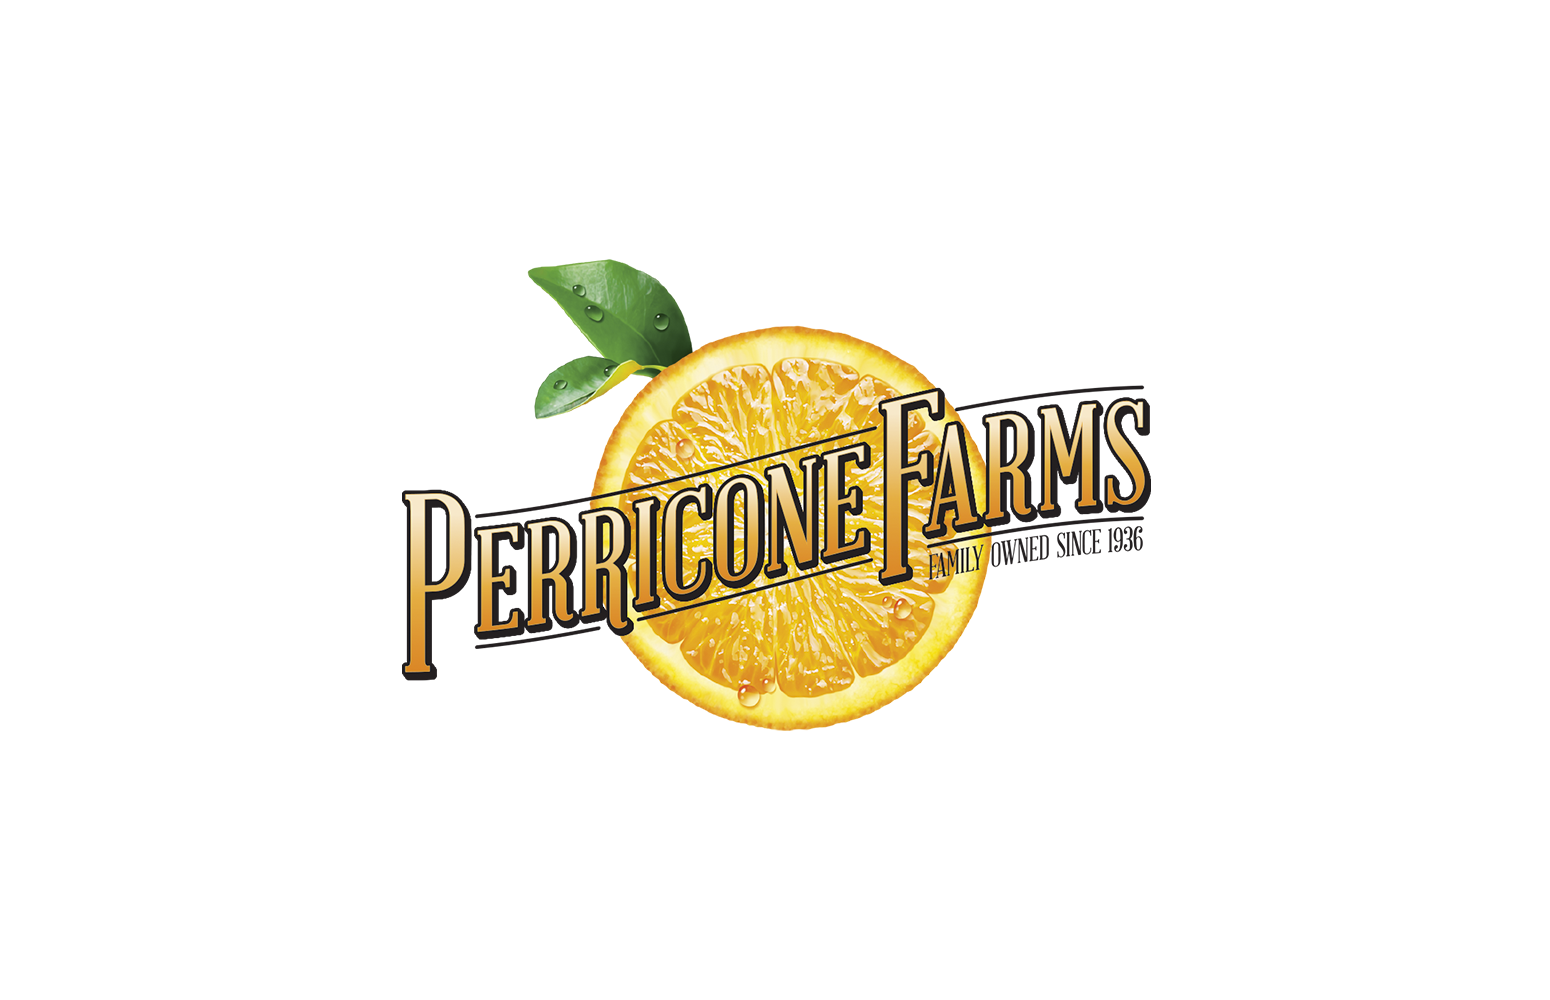 Perricone Farms